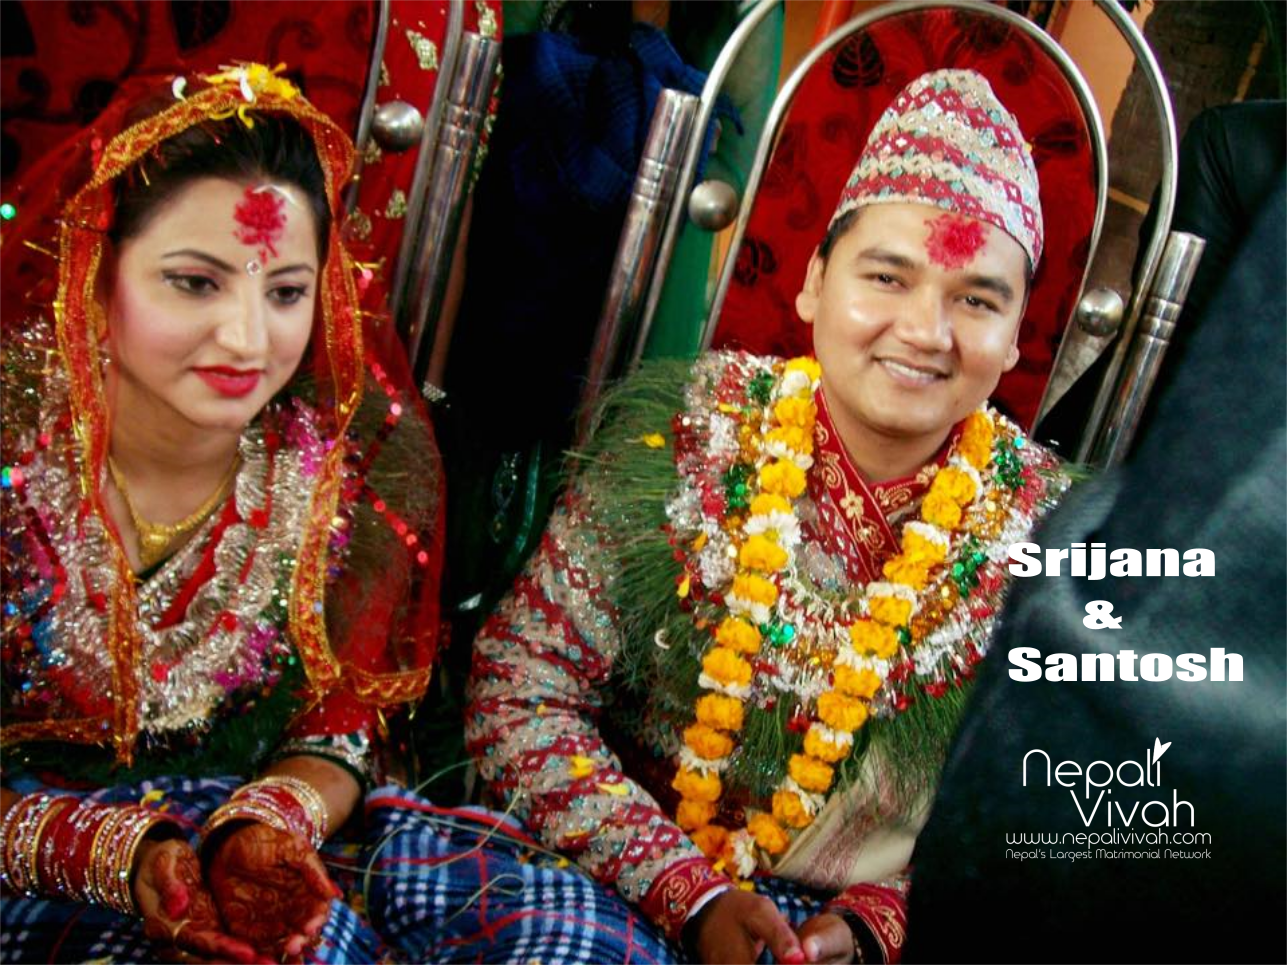 srijana-santosh-nepalivivah-com-success-story